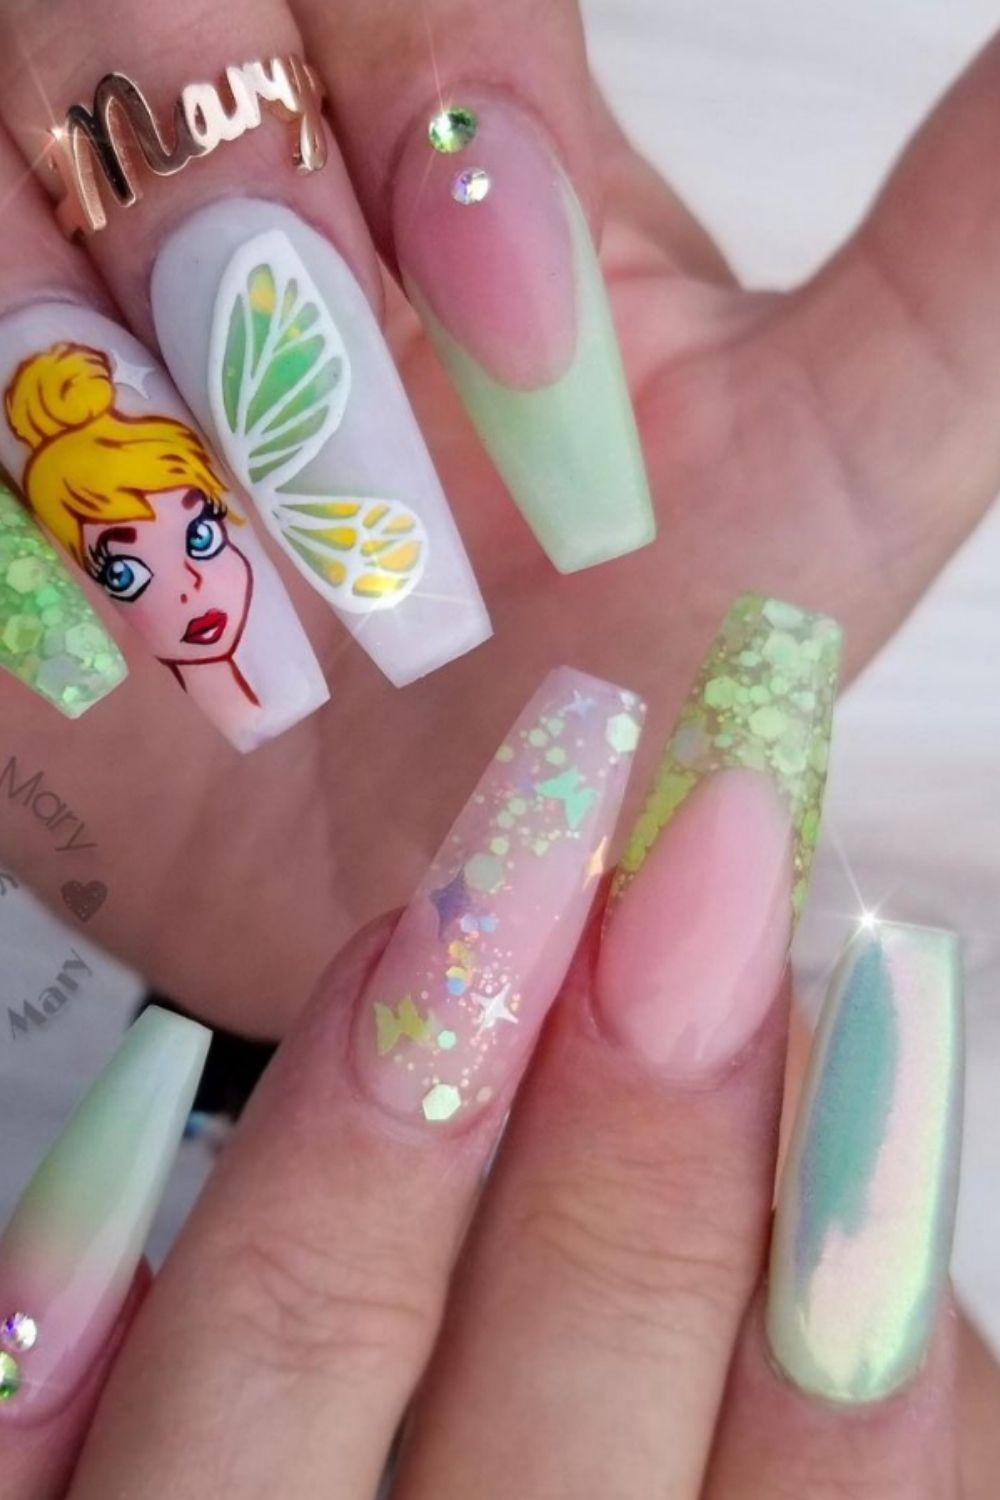 Coffin nails with French tip |35 Cute Nails With French Tips To DIY Now